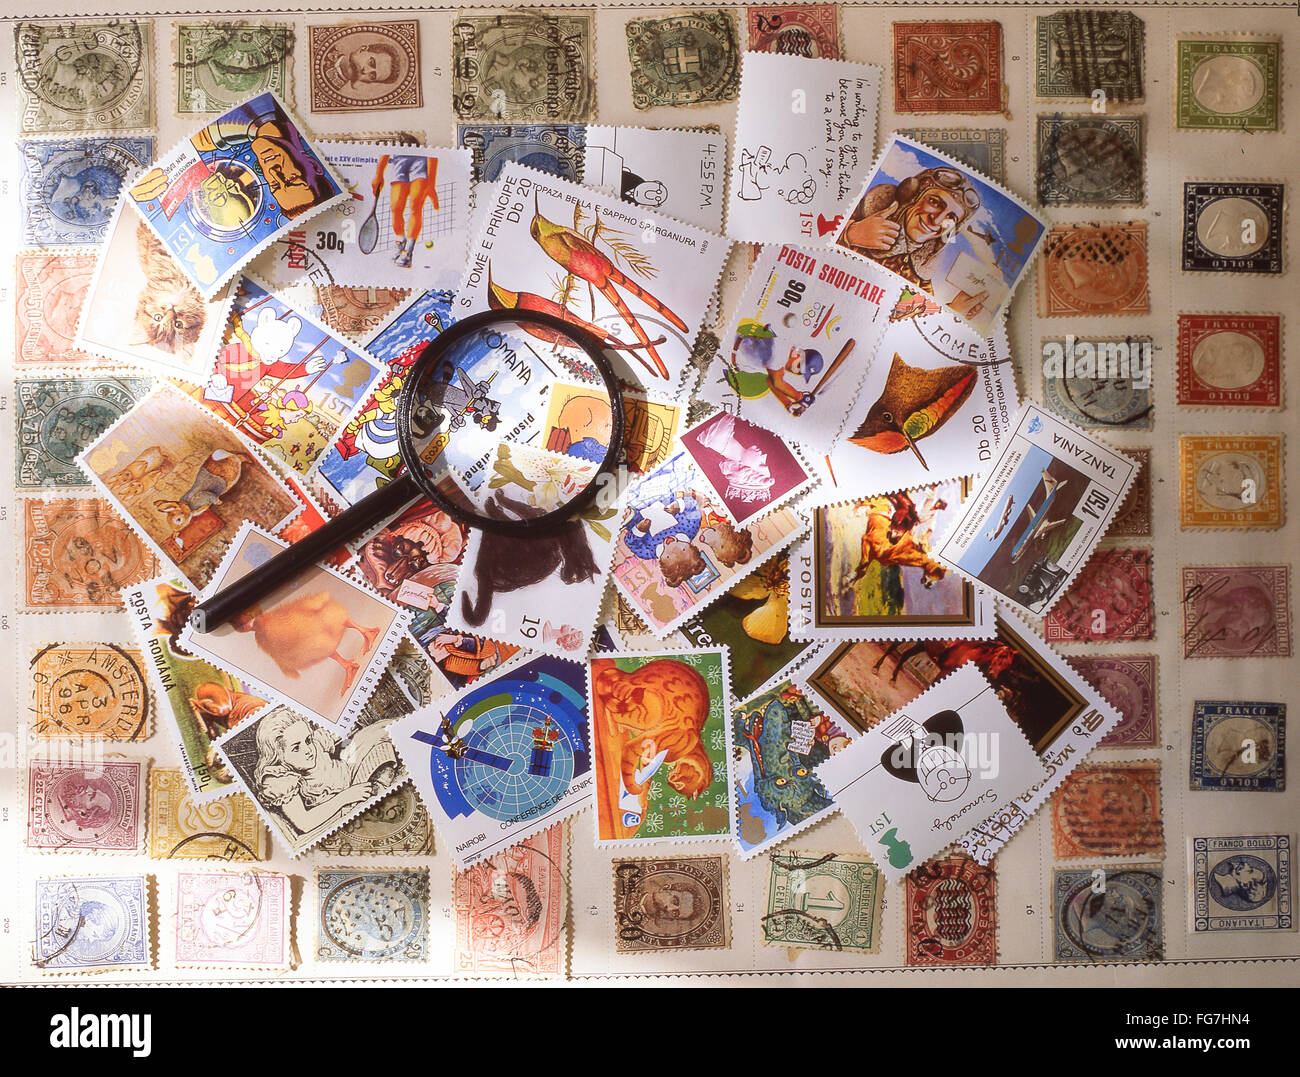 Collection of stamps with magnifying glass in studio setting, Berkshire, England, United Kingdom - Stock Image